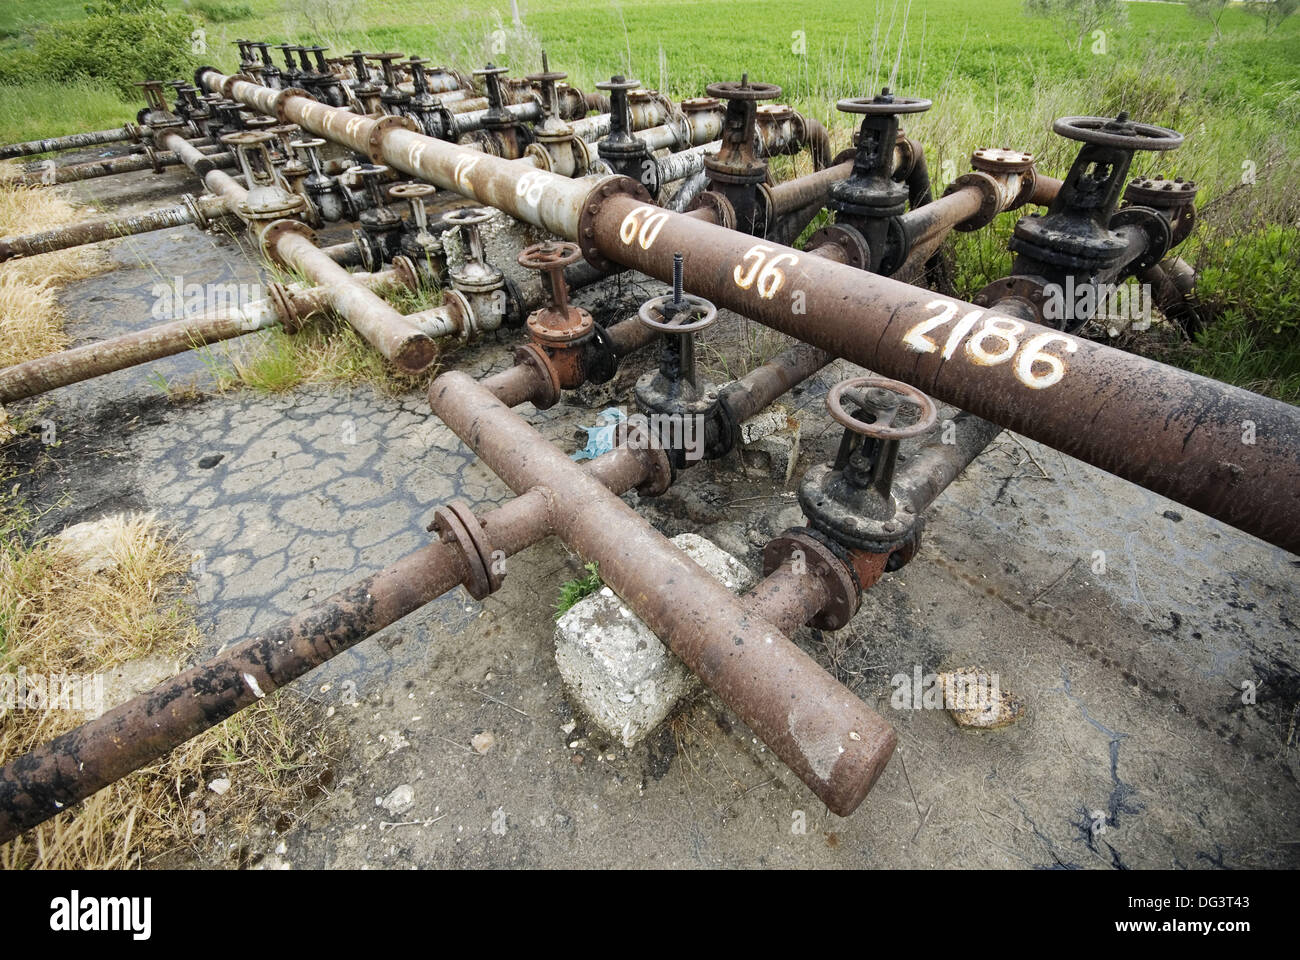 Oil field. Fier, Albania - Stock Image